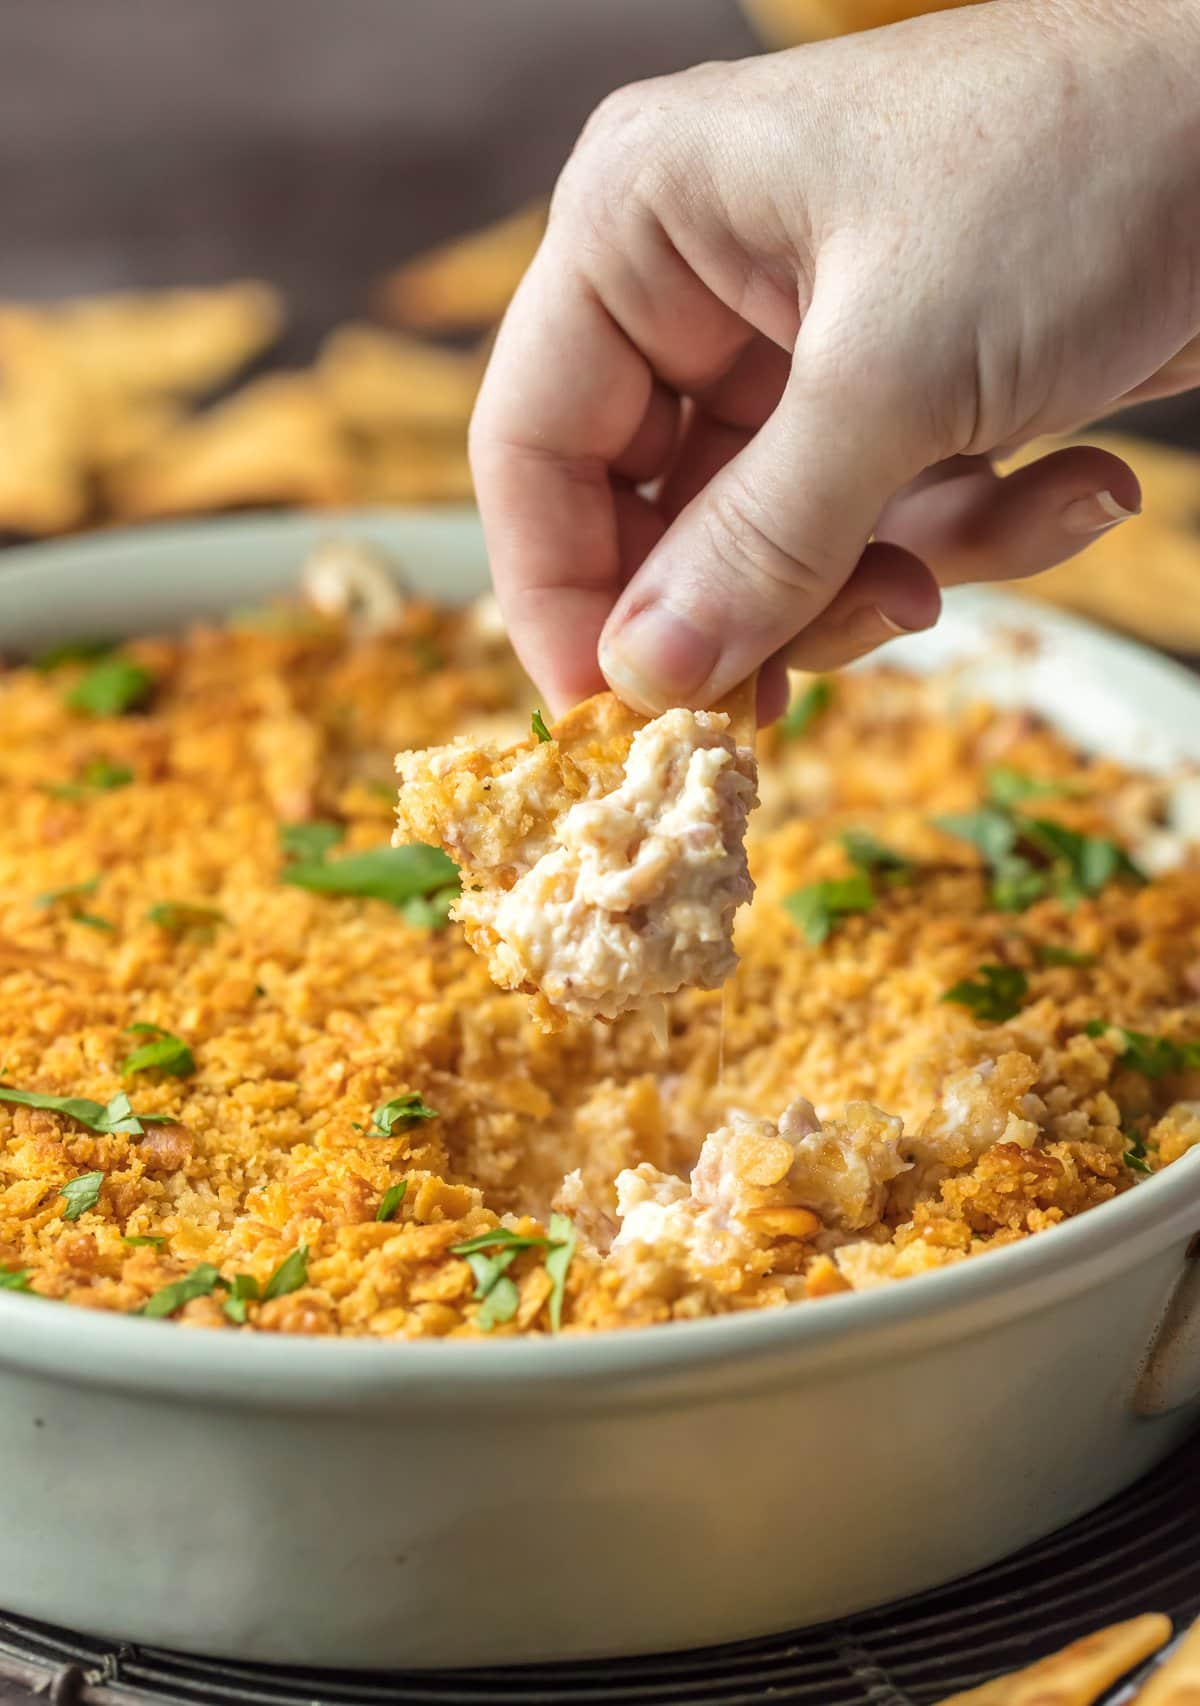 Dipping a cracker into chicken cordon bleu dip